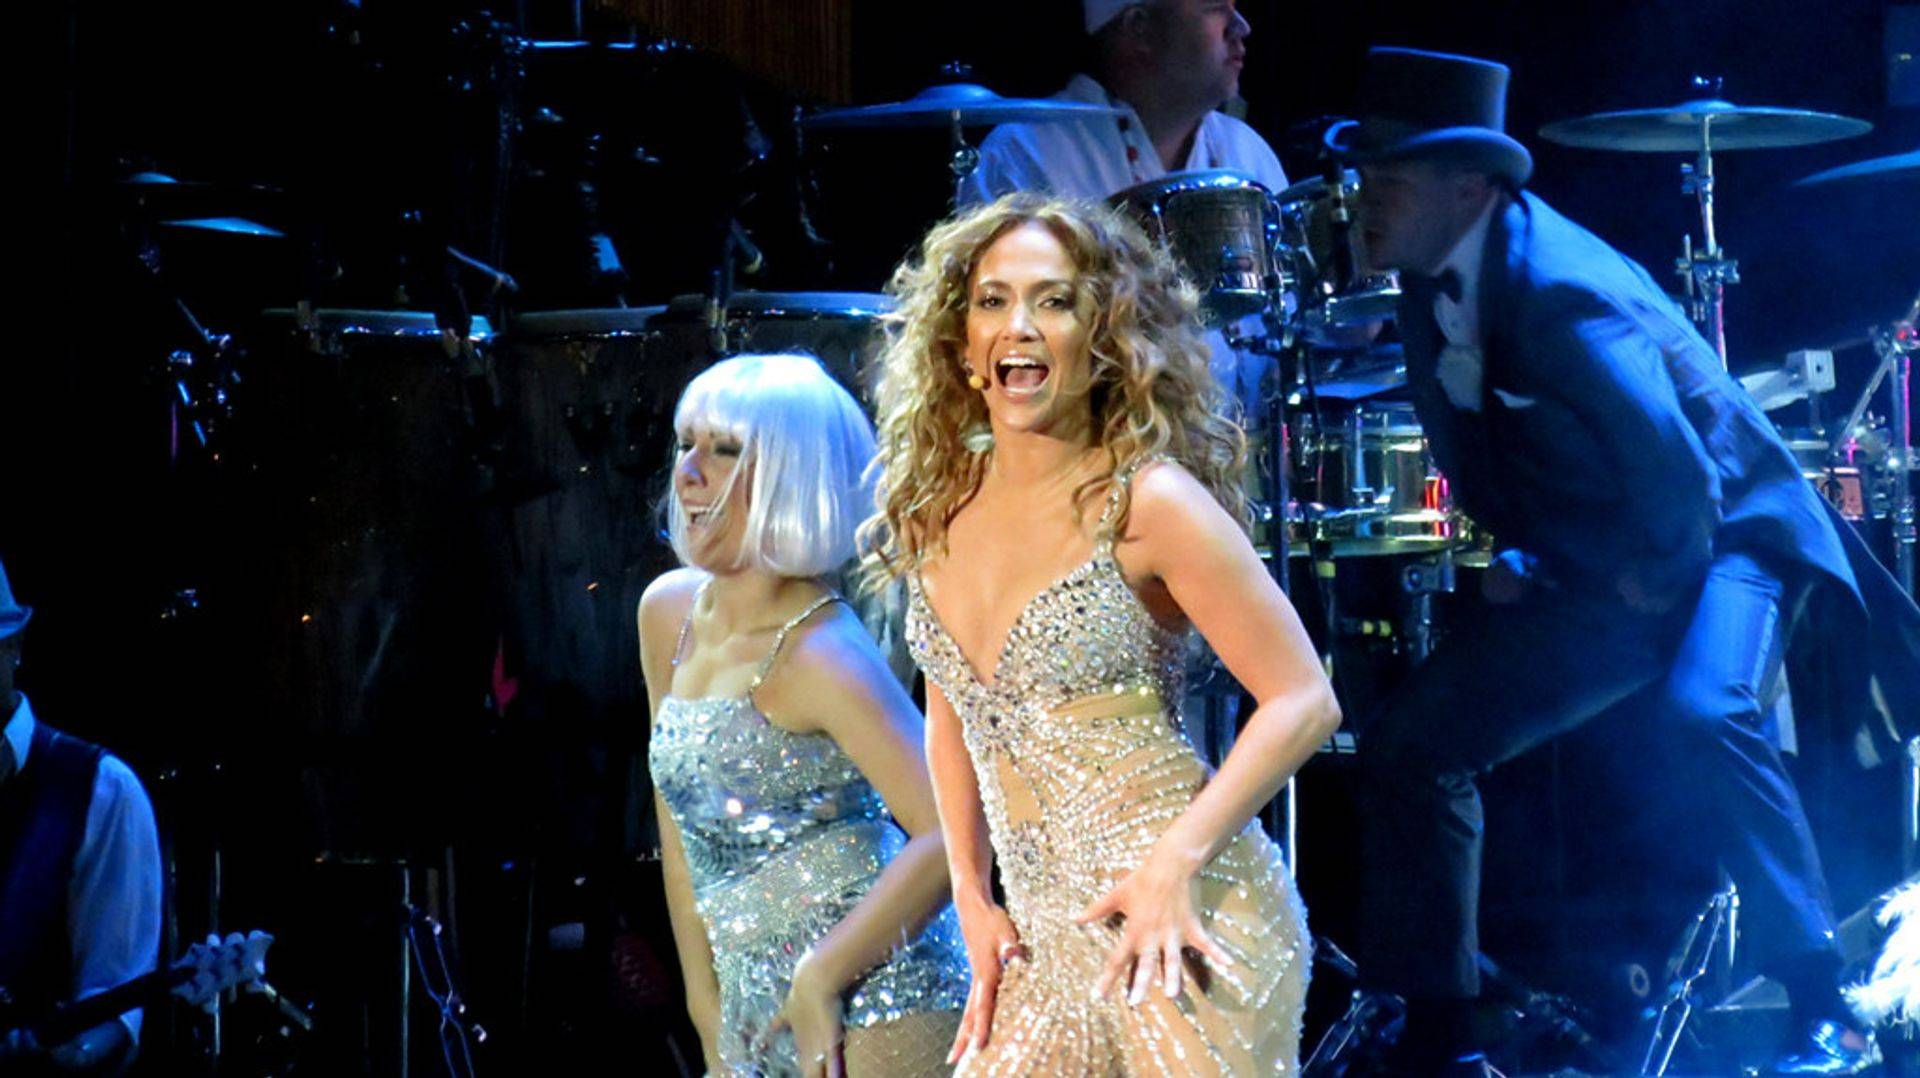 Jennifer Lopez performs her live show to a sell out US crowd